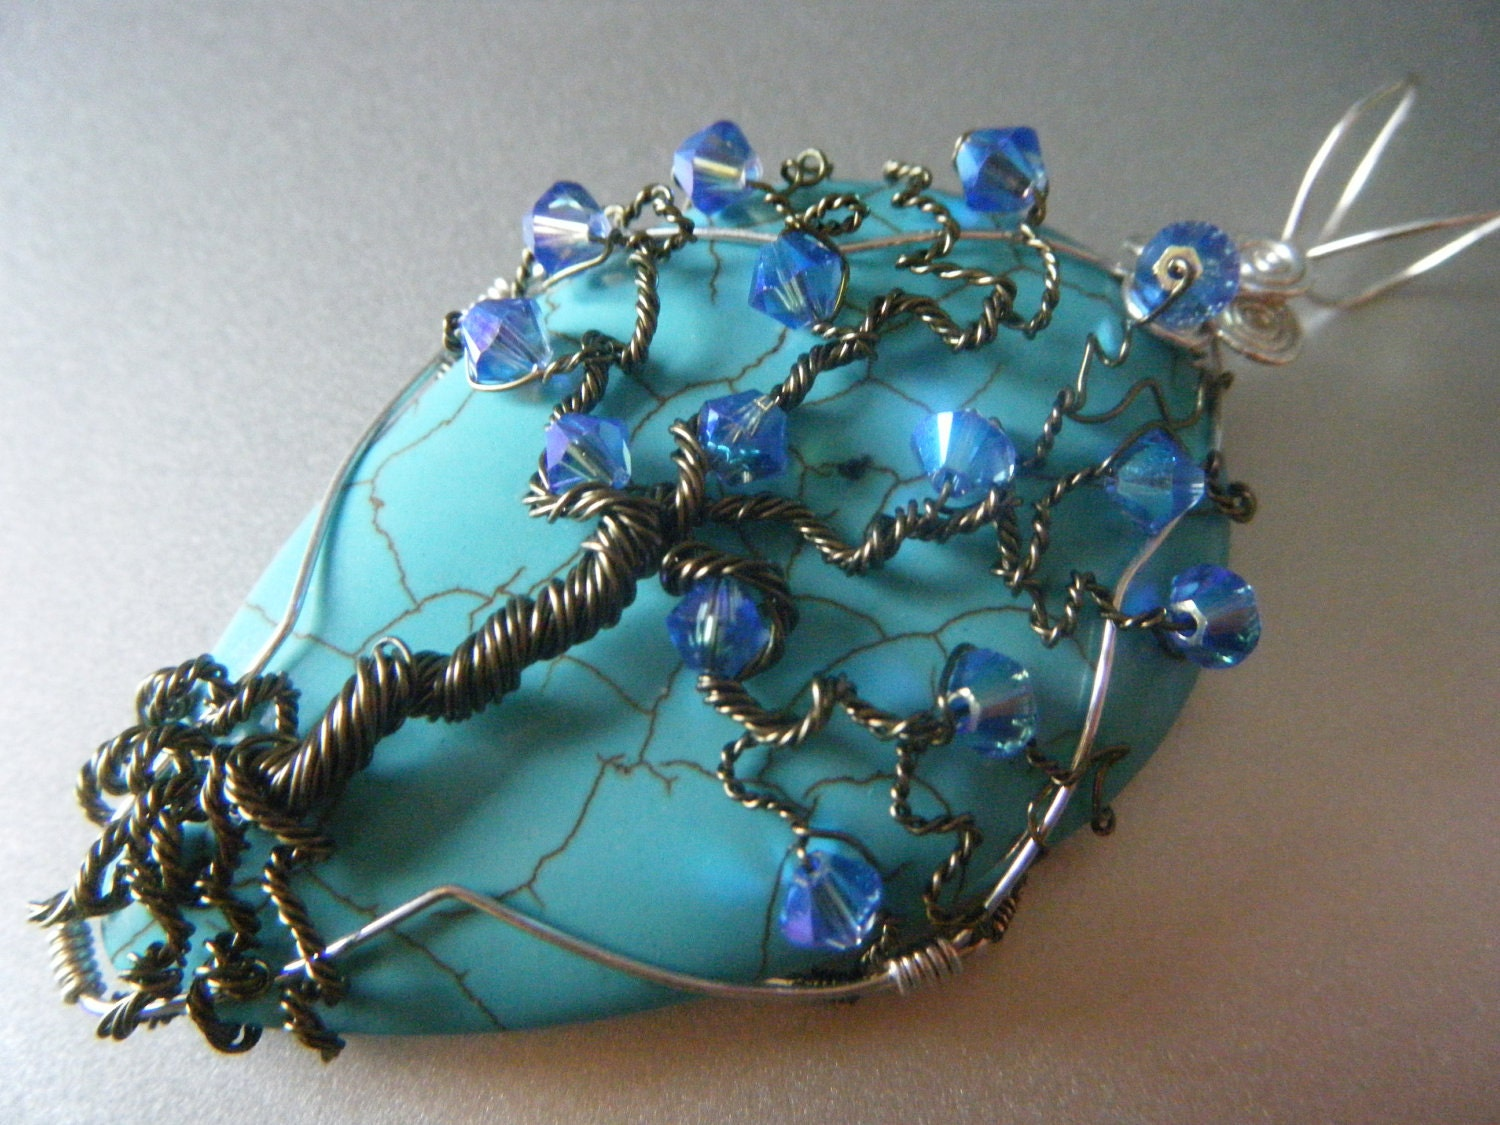 Avatar Home Tree of Life Pendant - Turquoise and Sapphire Swarovski Crystals - Blue Ocean Pendant